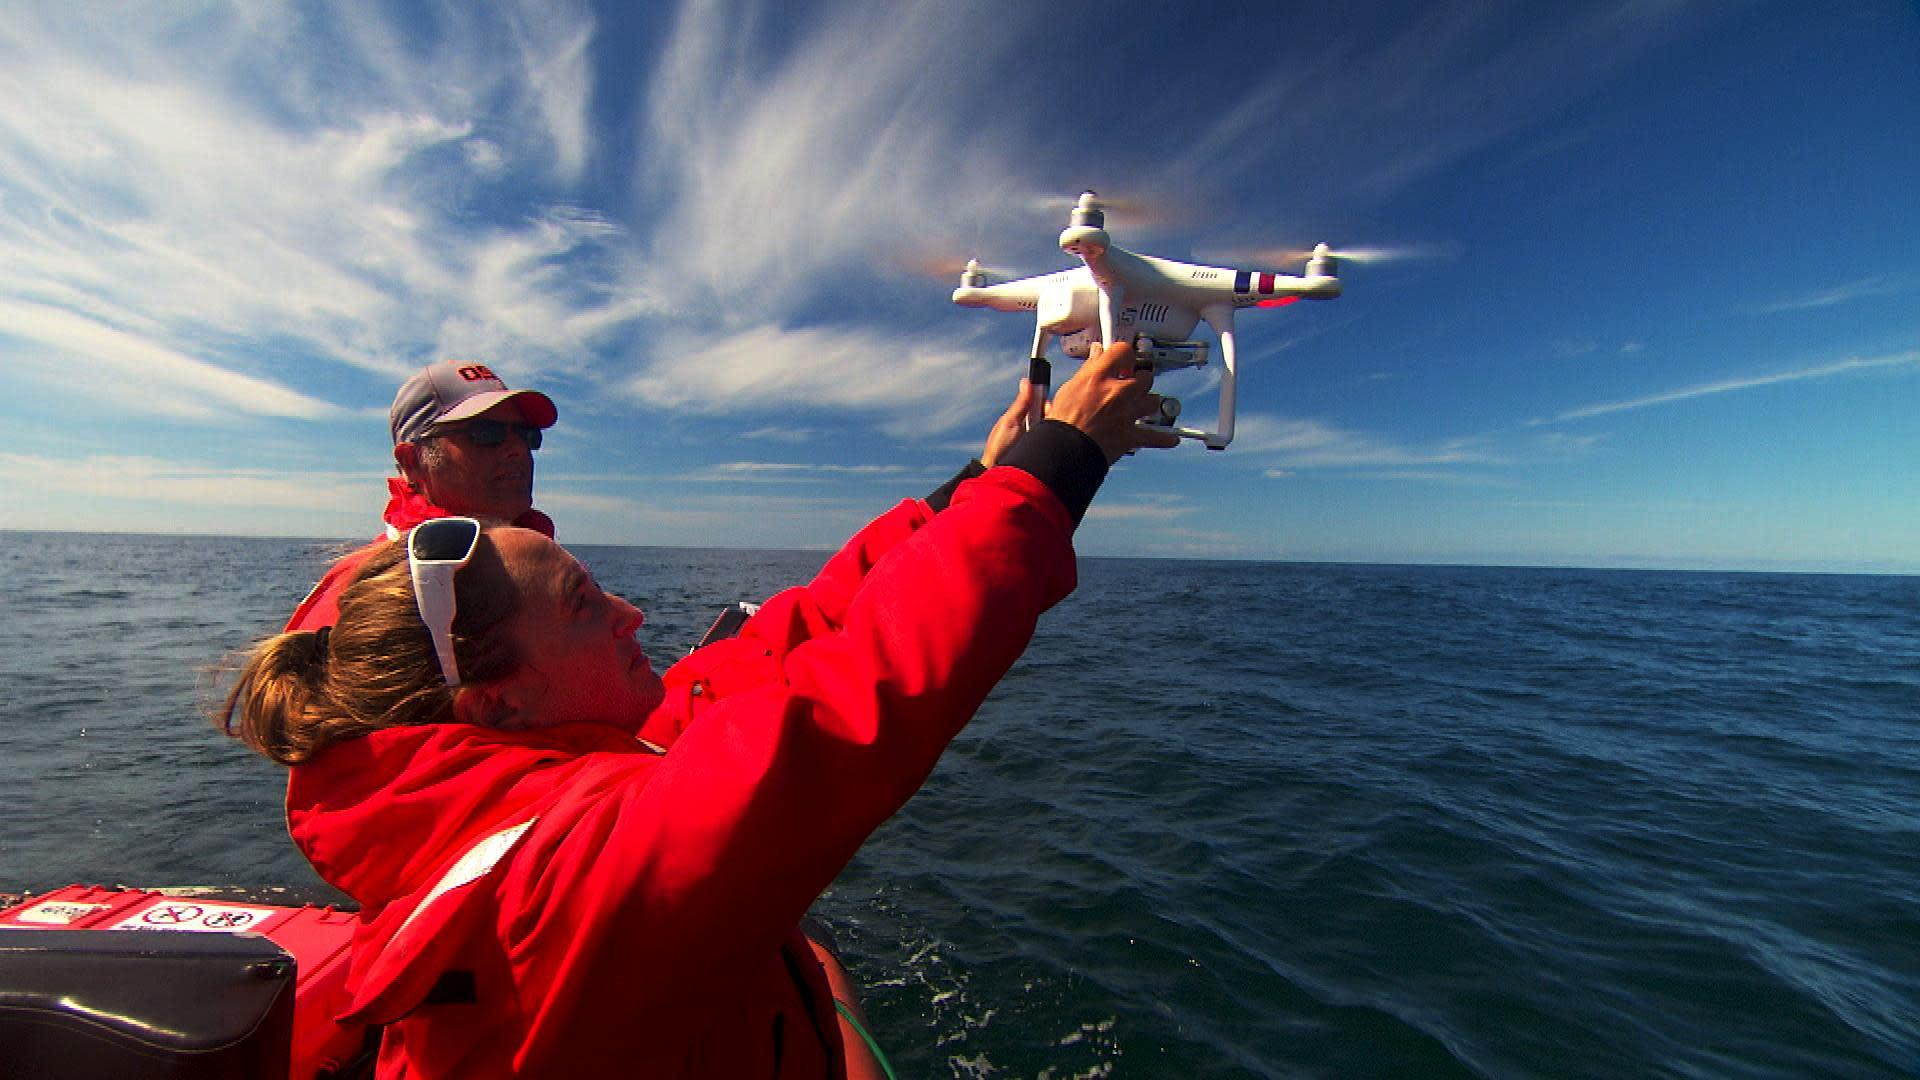 Oregon State University researcher Leigh Torres launches a drone off the Oregon coast to study how whales respond to noise pollution from vessel traffic. The project has funding from the National Marine Fisheries Service Office of Science and Technology Ocean Acoustics Program.